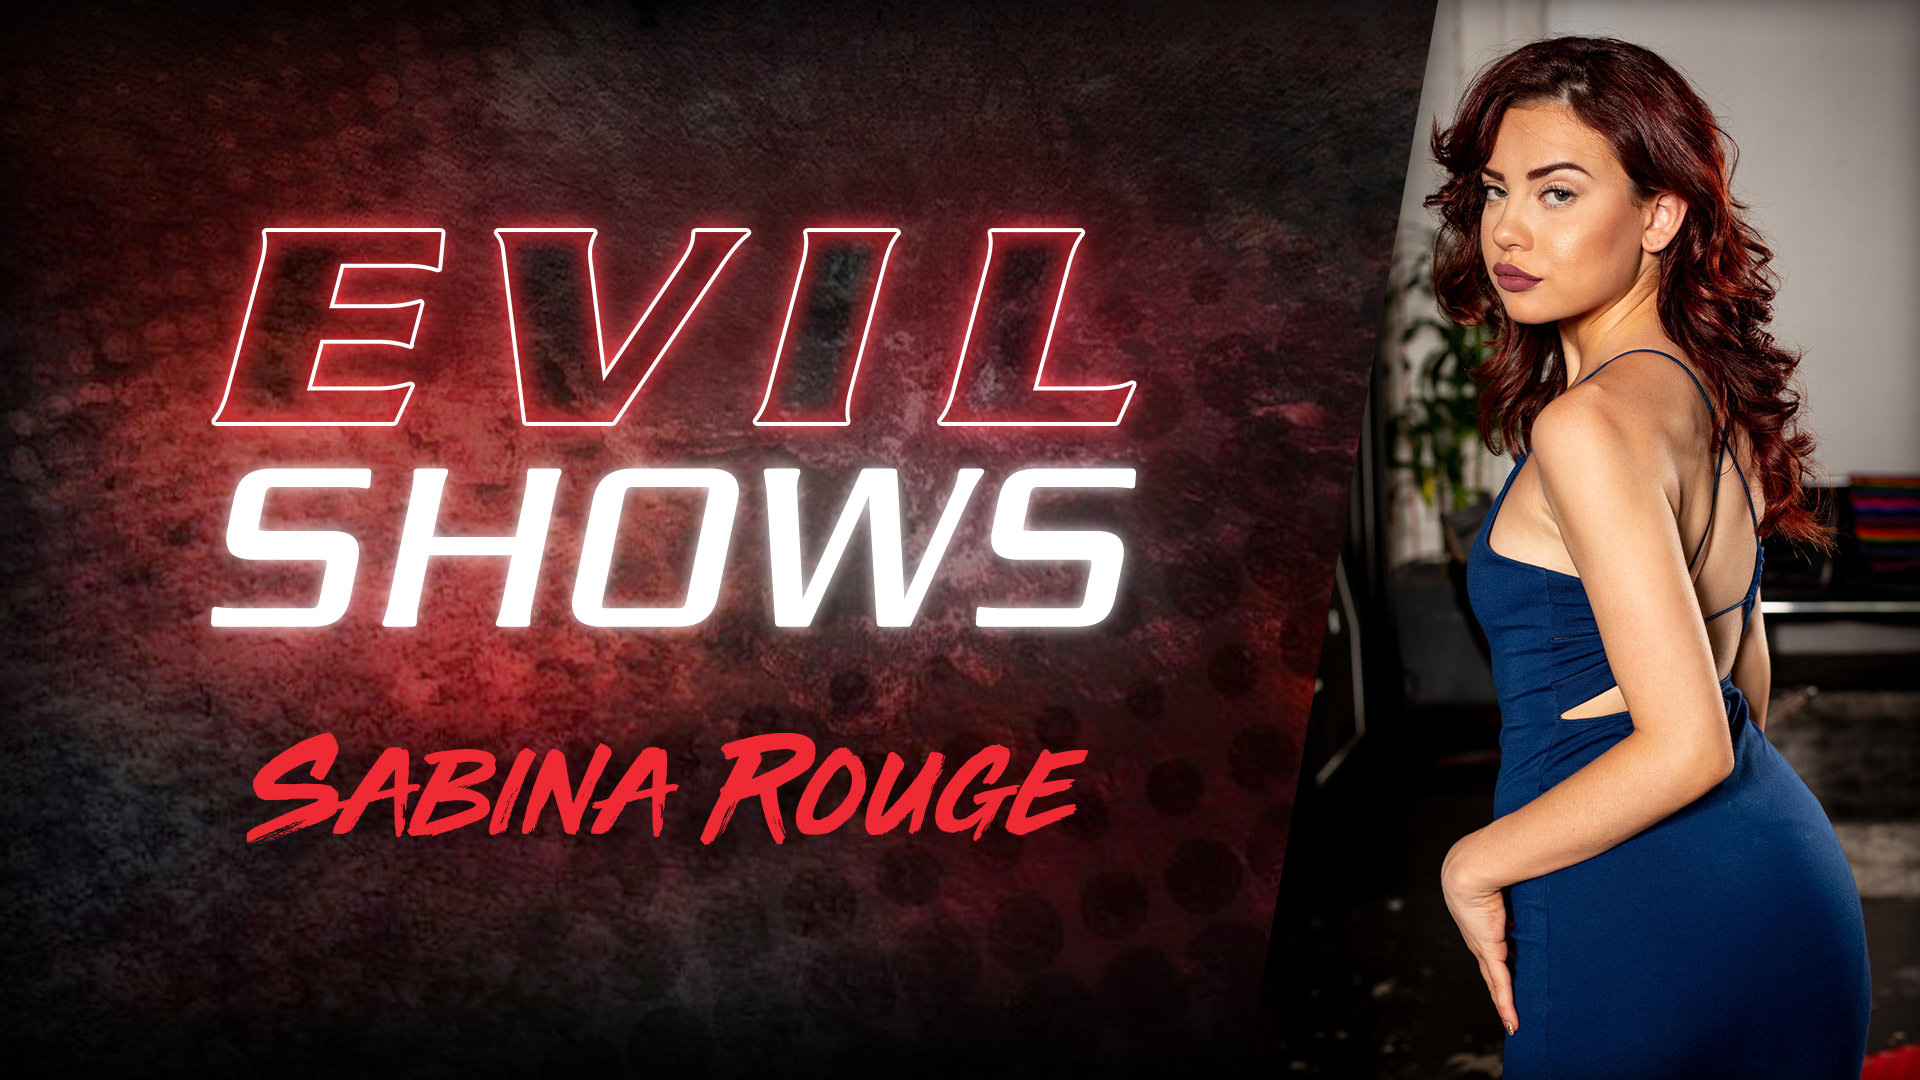 Evil Shows - Sabina Rouge - Sabina Rouge 1